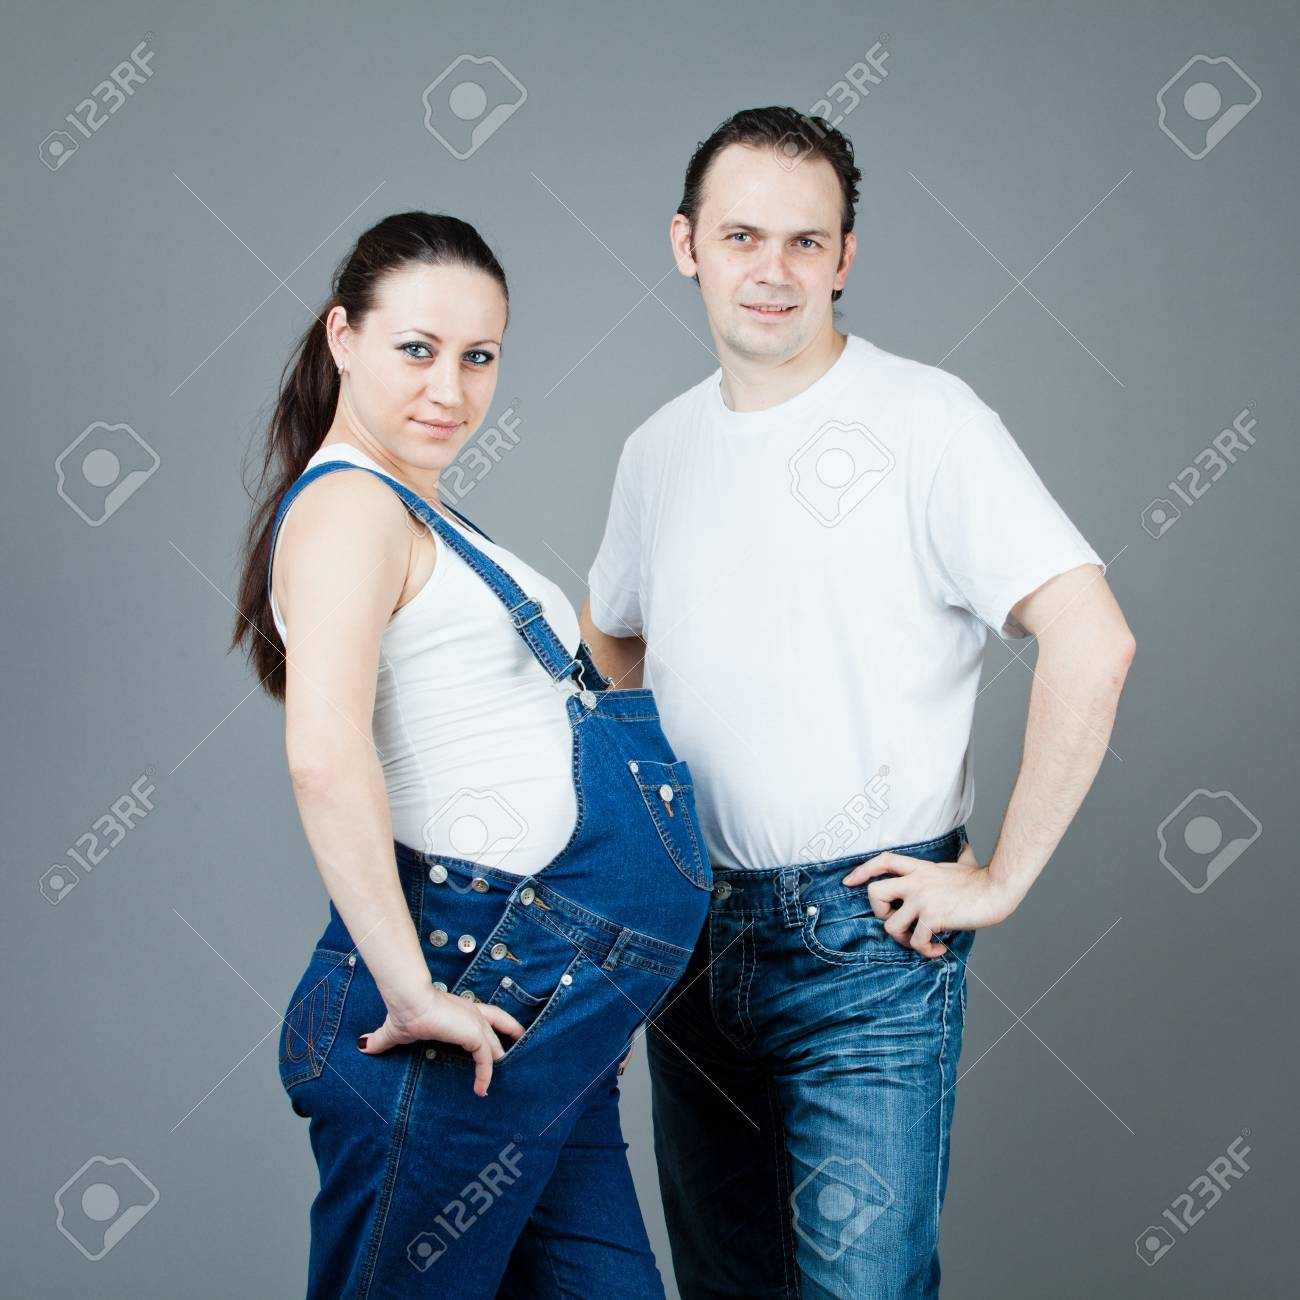 A man and a pregnant woman, the couple posing on a gray background Stock Photo - 15616186